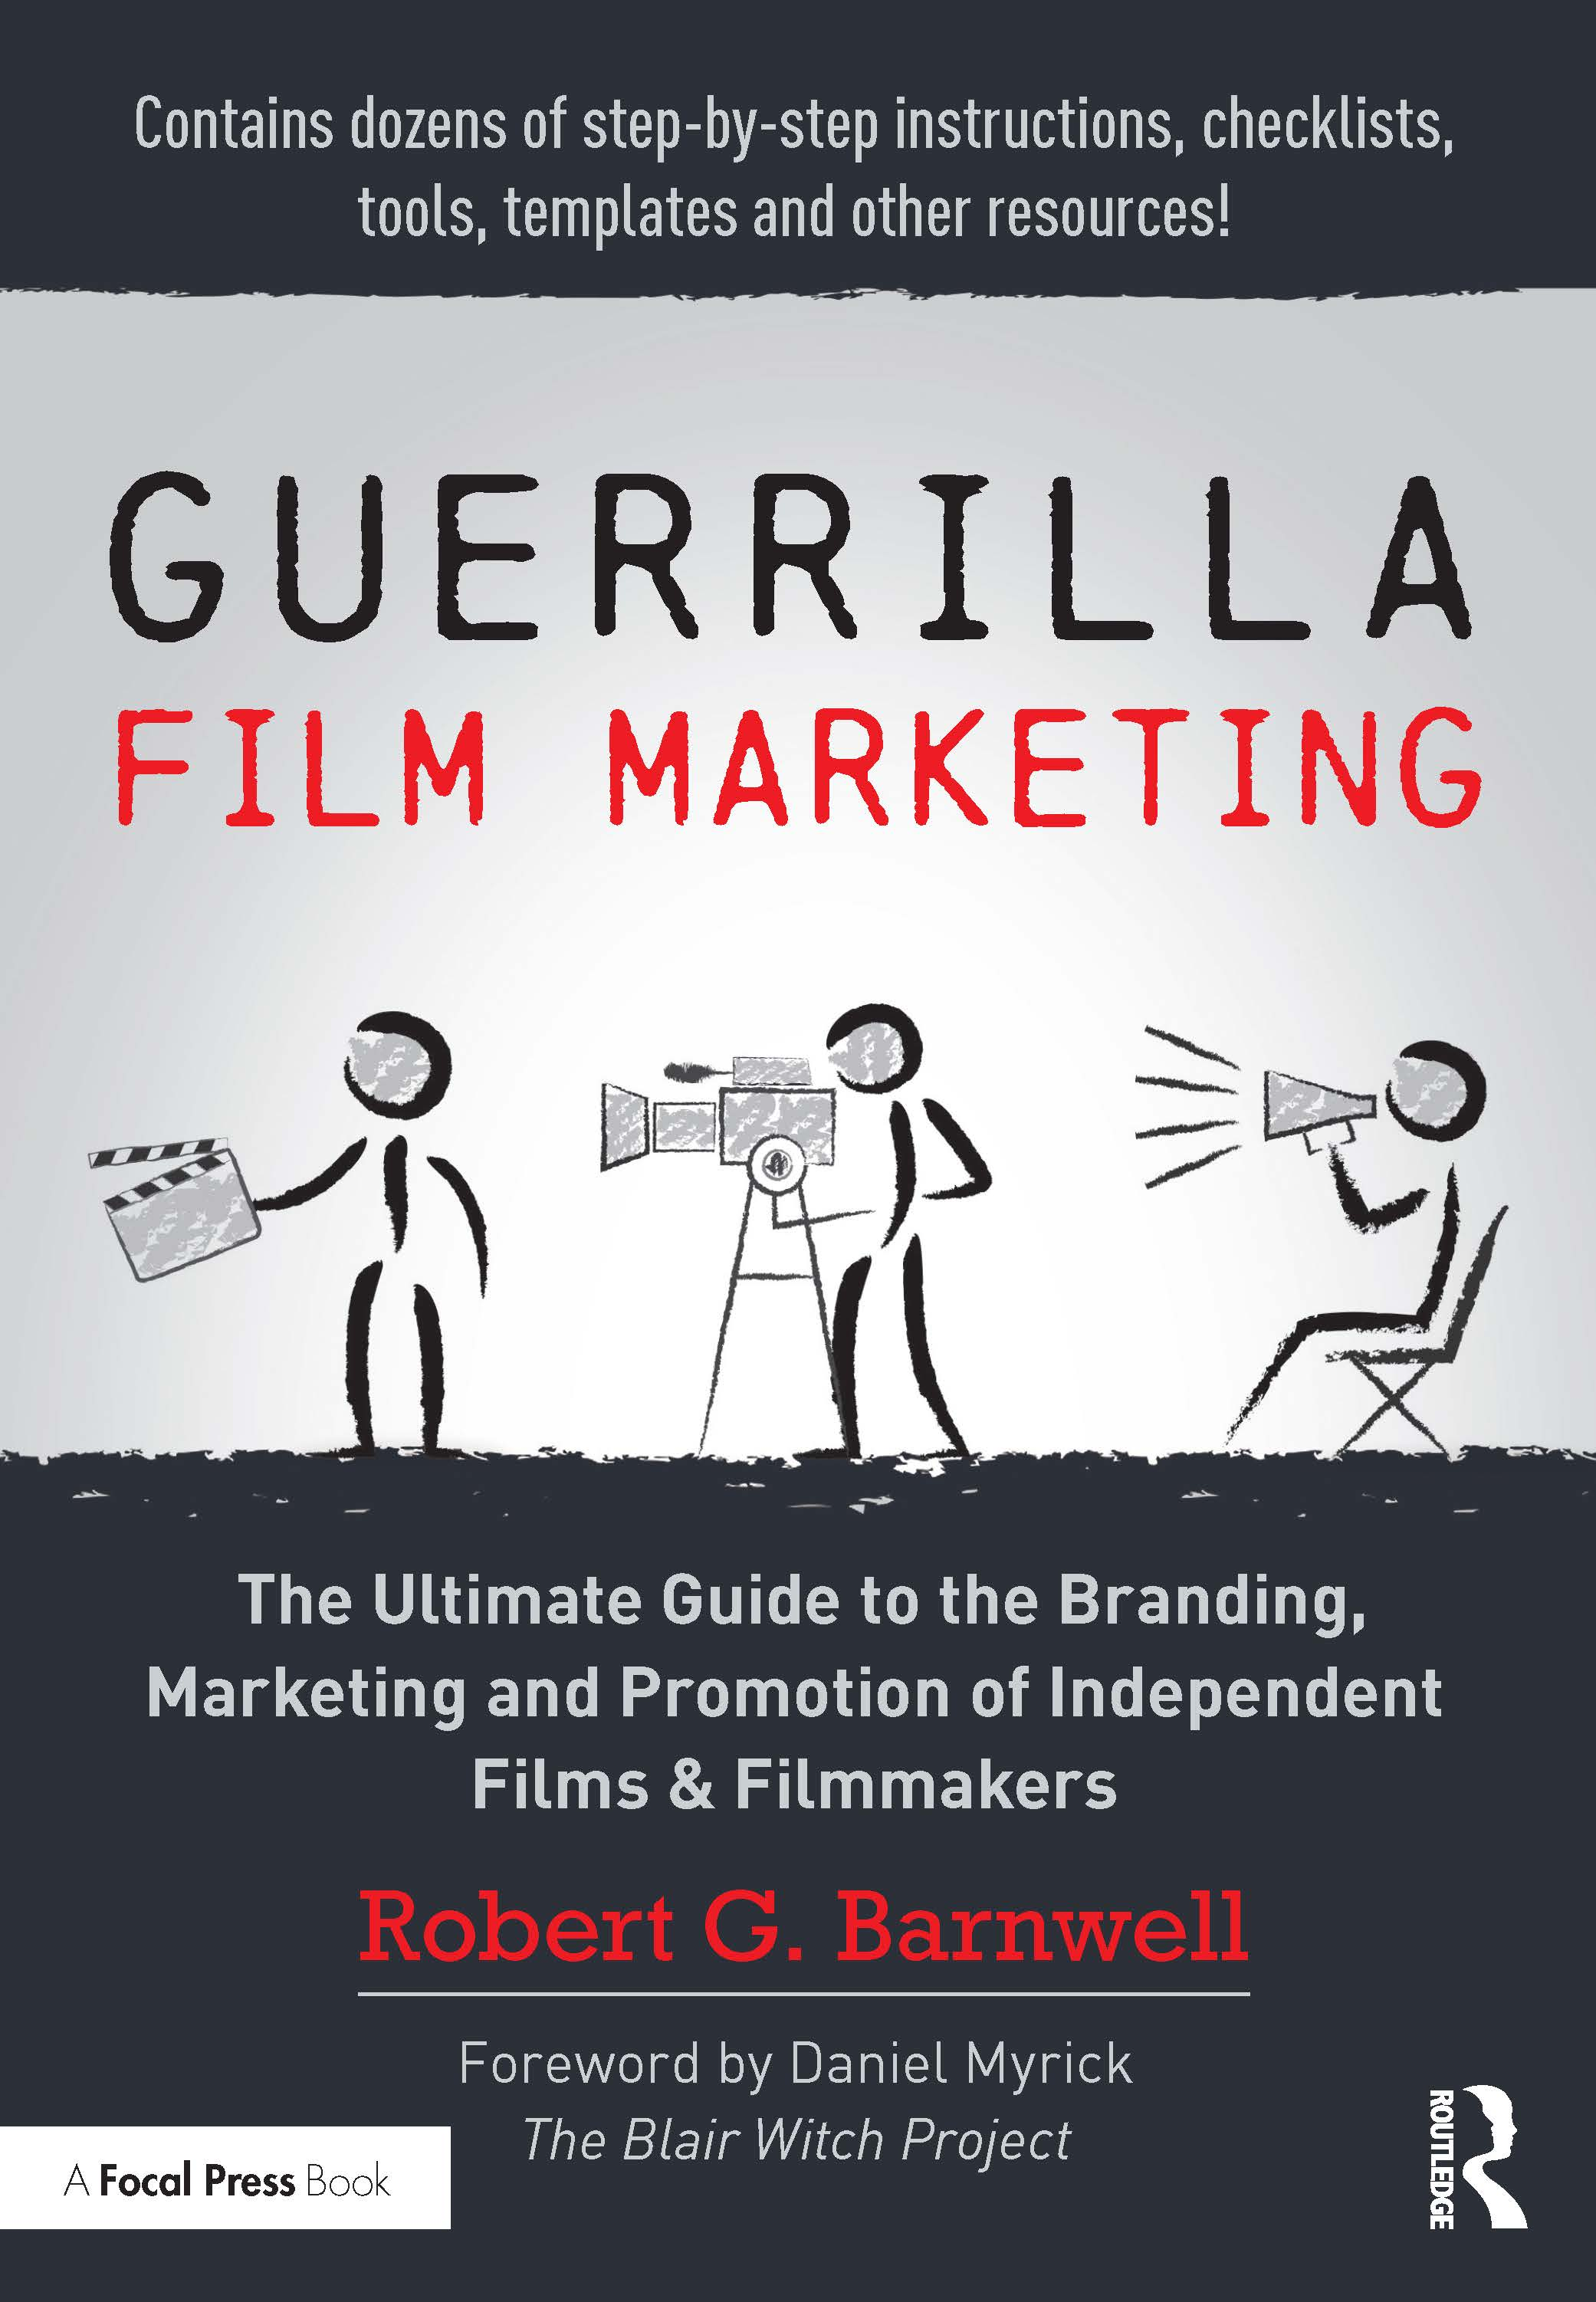 Guerrilla Film Marketing: The Ultimate Guide to the Branding, Marketing and Promotion of Independent Films & Filmmakers, 1st Edition (Paperback) book cover